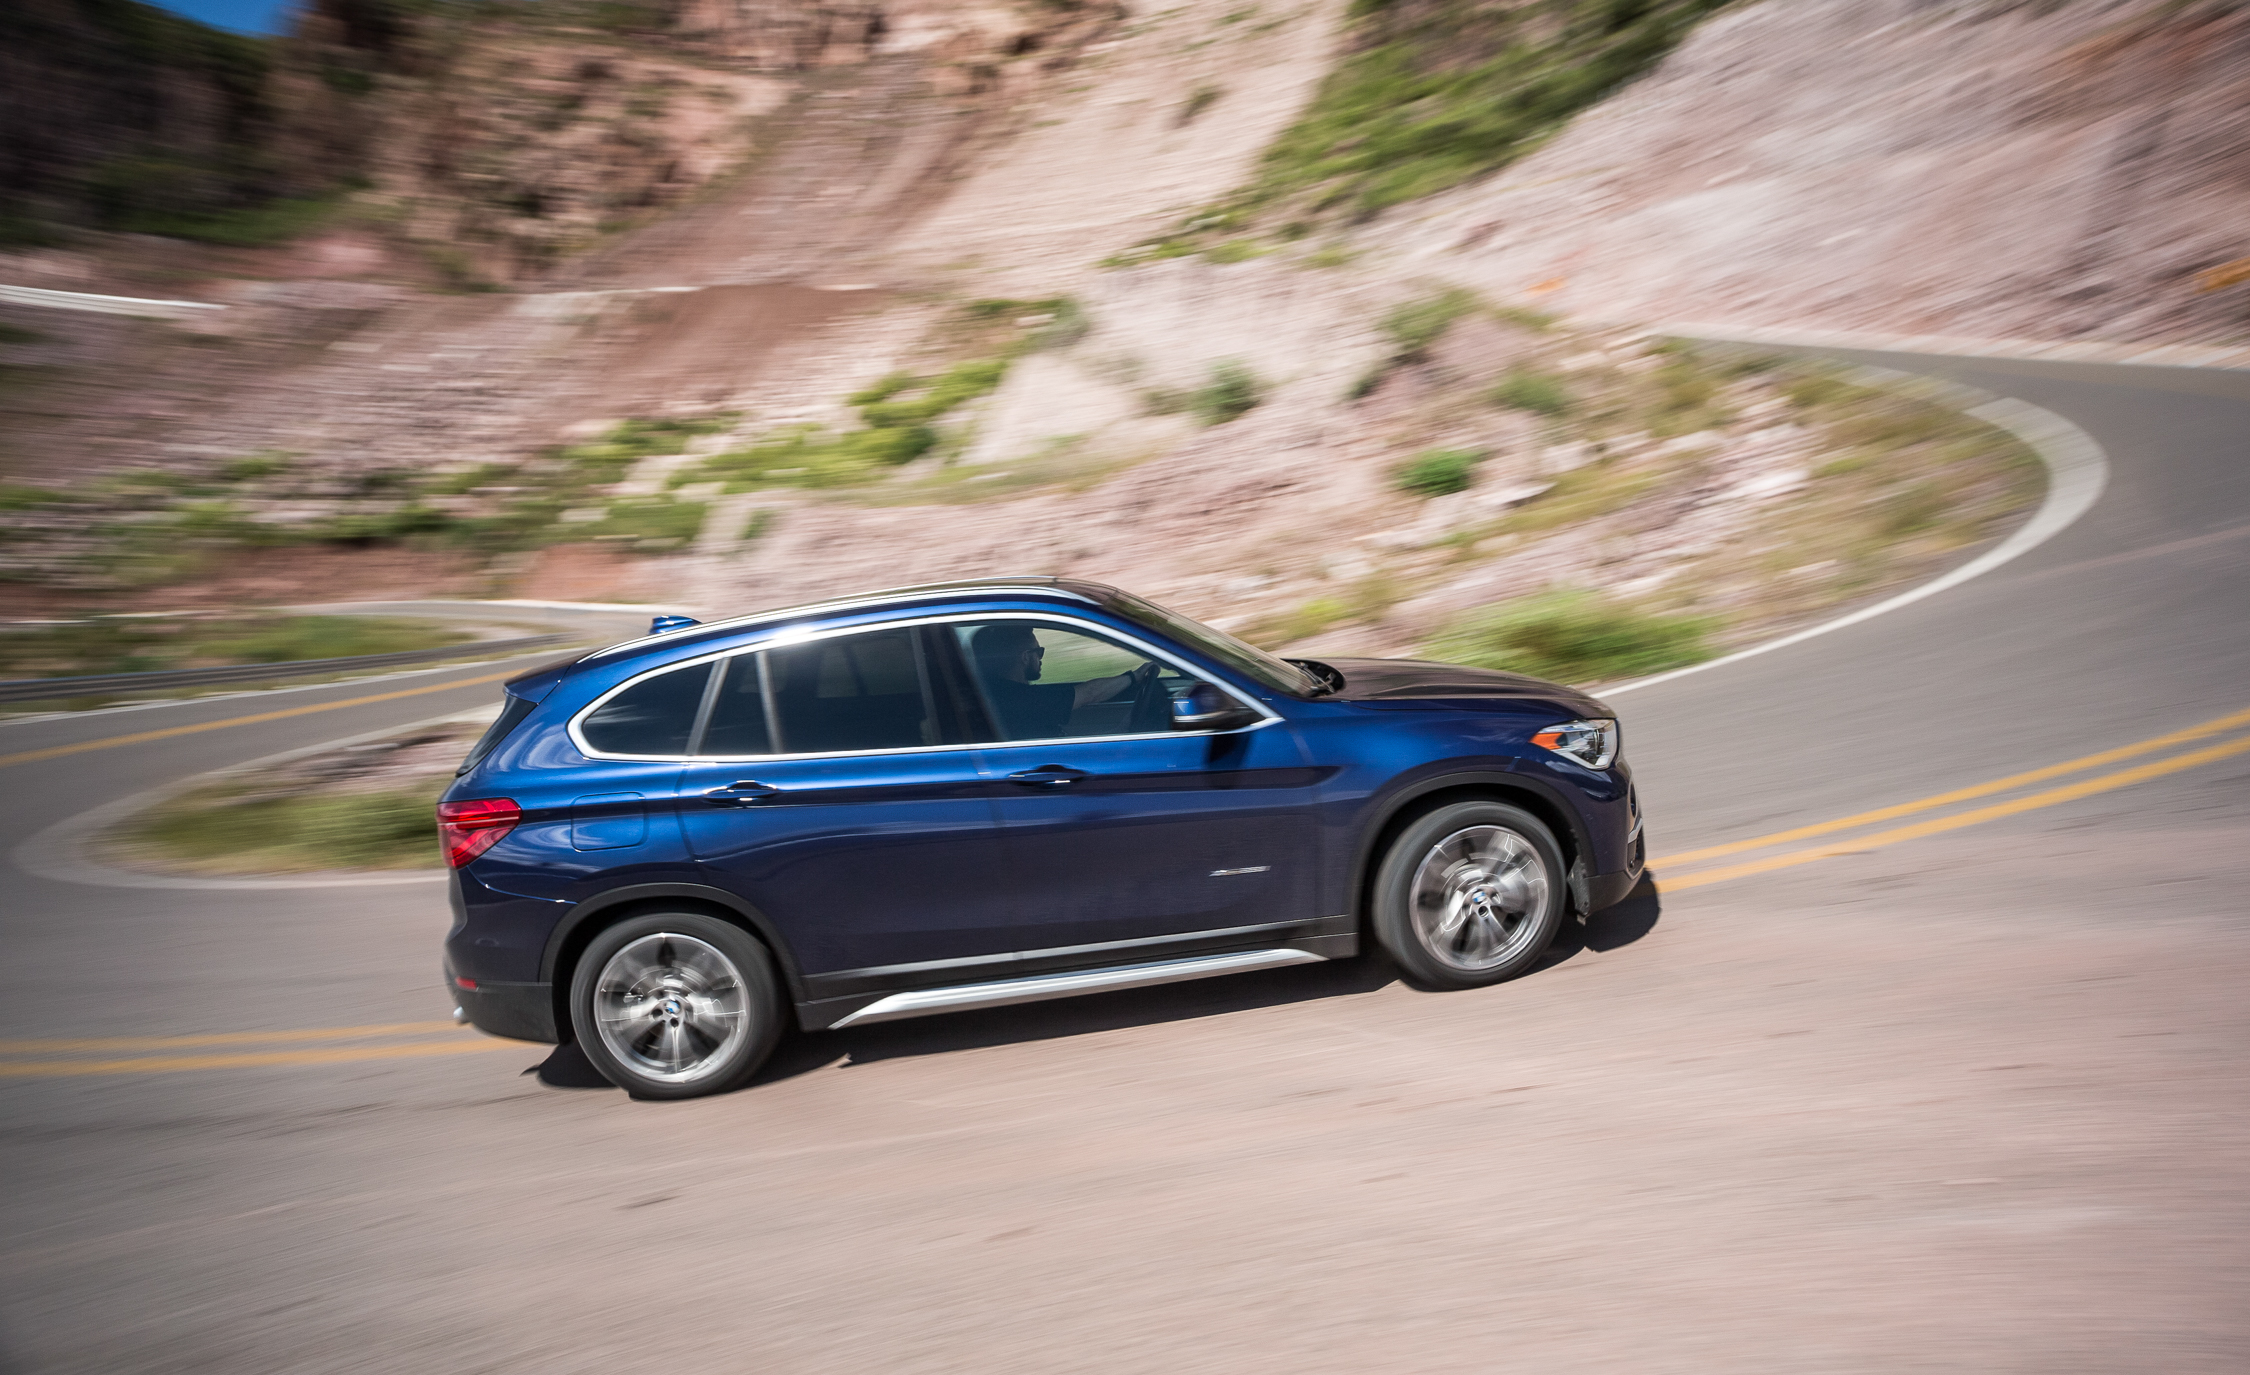 2016 BMW X1 XDrive28i Blue Metallic Test Drive Side View (Photo 34 of 36)